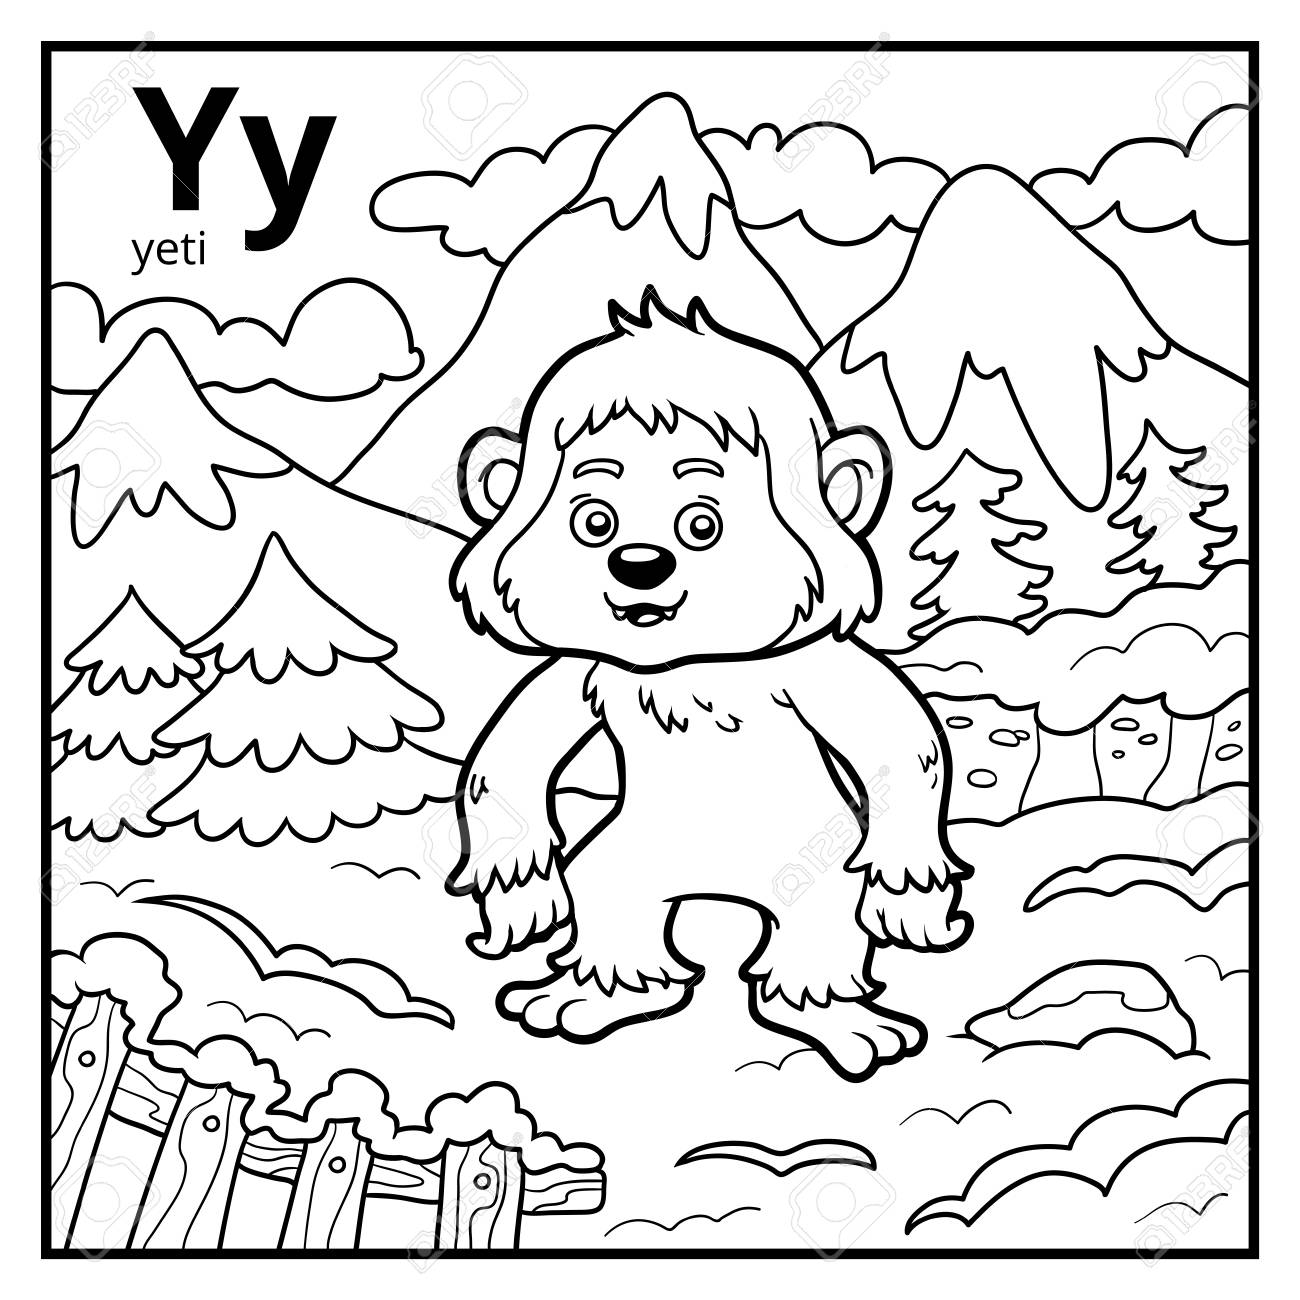 Coloring Book For Children Colorless Alphabet Letter Y Yeti Stock Vector